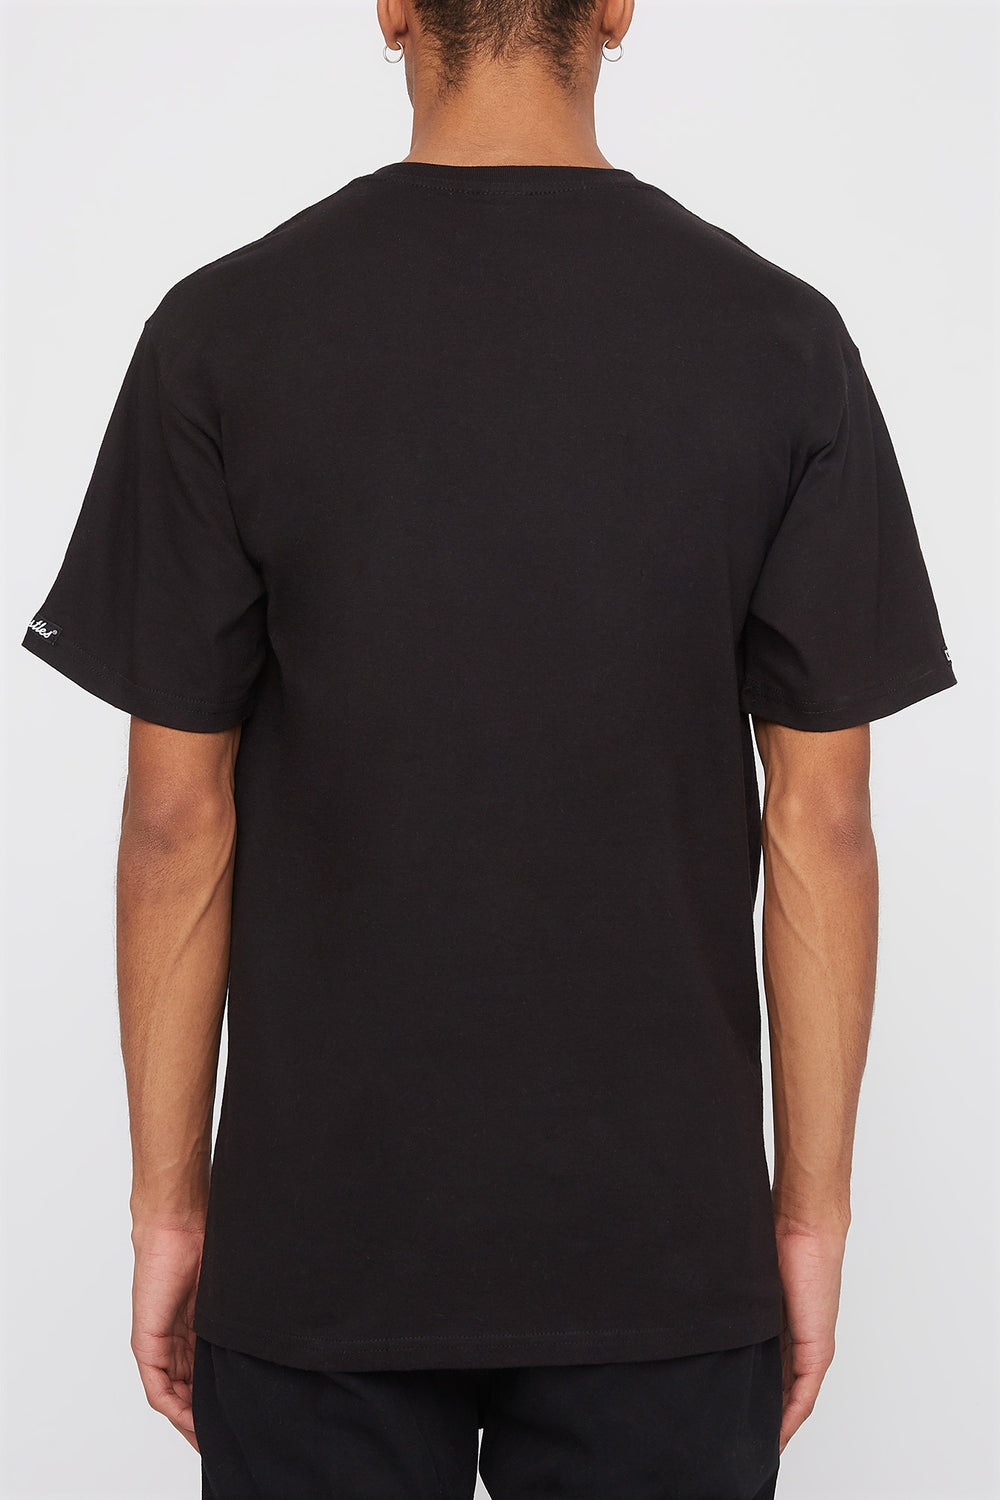 Crooks & Castles Mens Logo T-Shirt Black